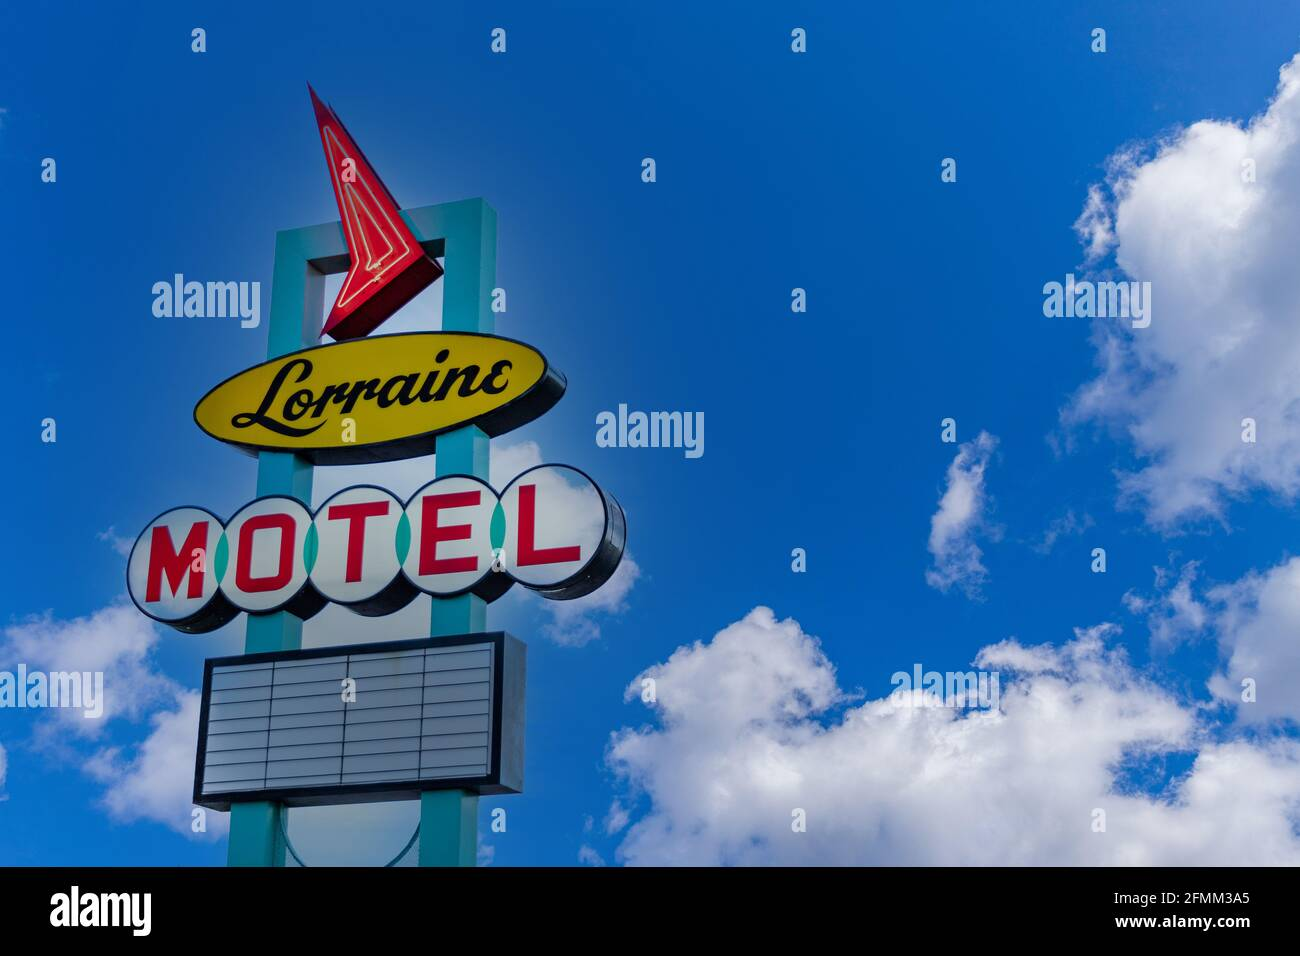 Memphis, TN / USA - September 3, 2020: The Lorraine Motel in Memphis, TN where Martin Luther King, Jr was assassinated. Stock Photo